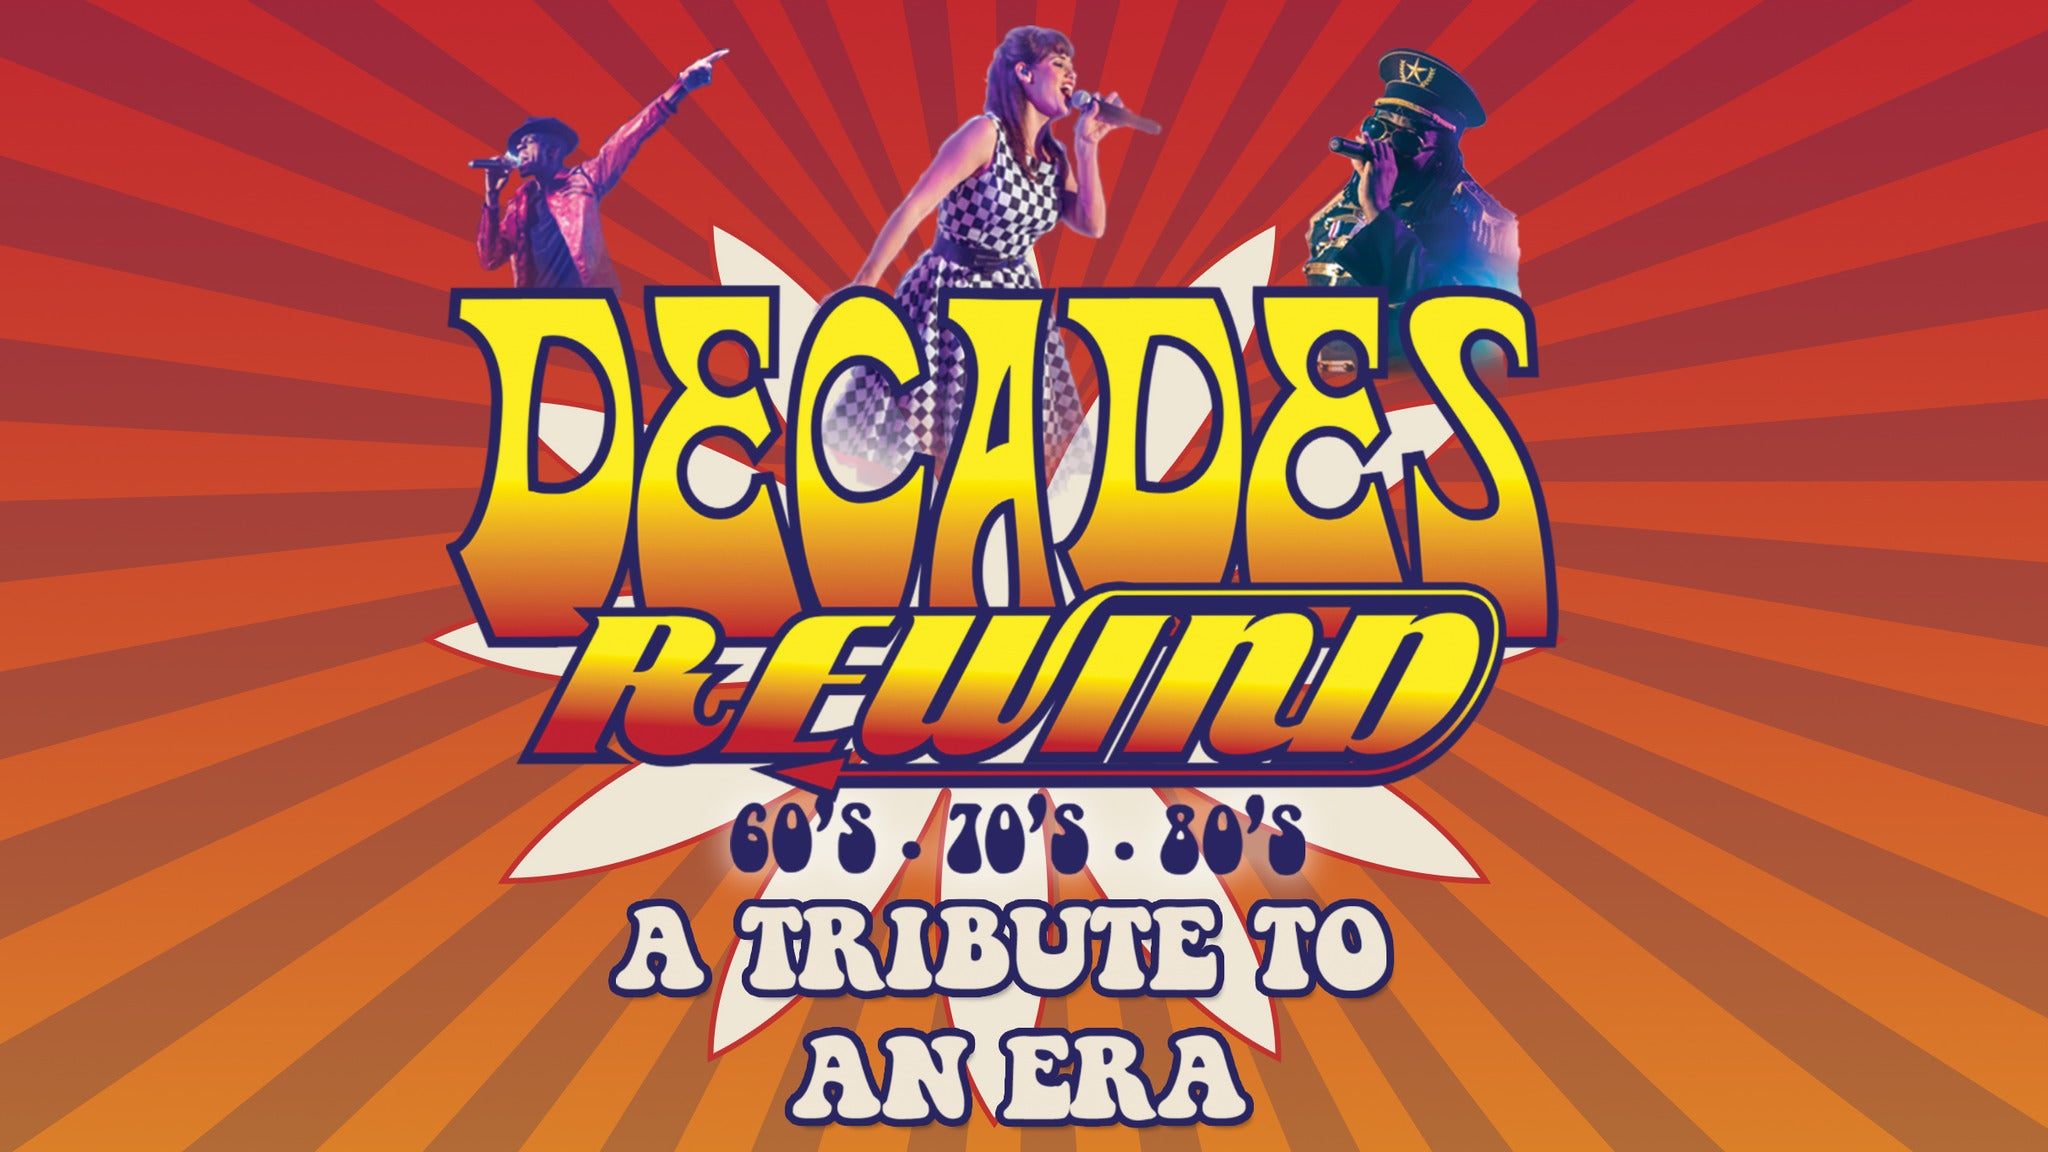 Decades Rewind at Coronado Performing Arts Center